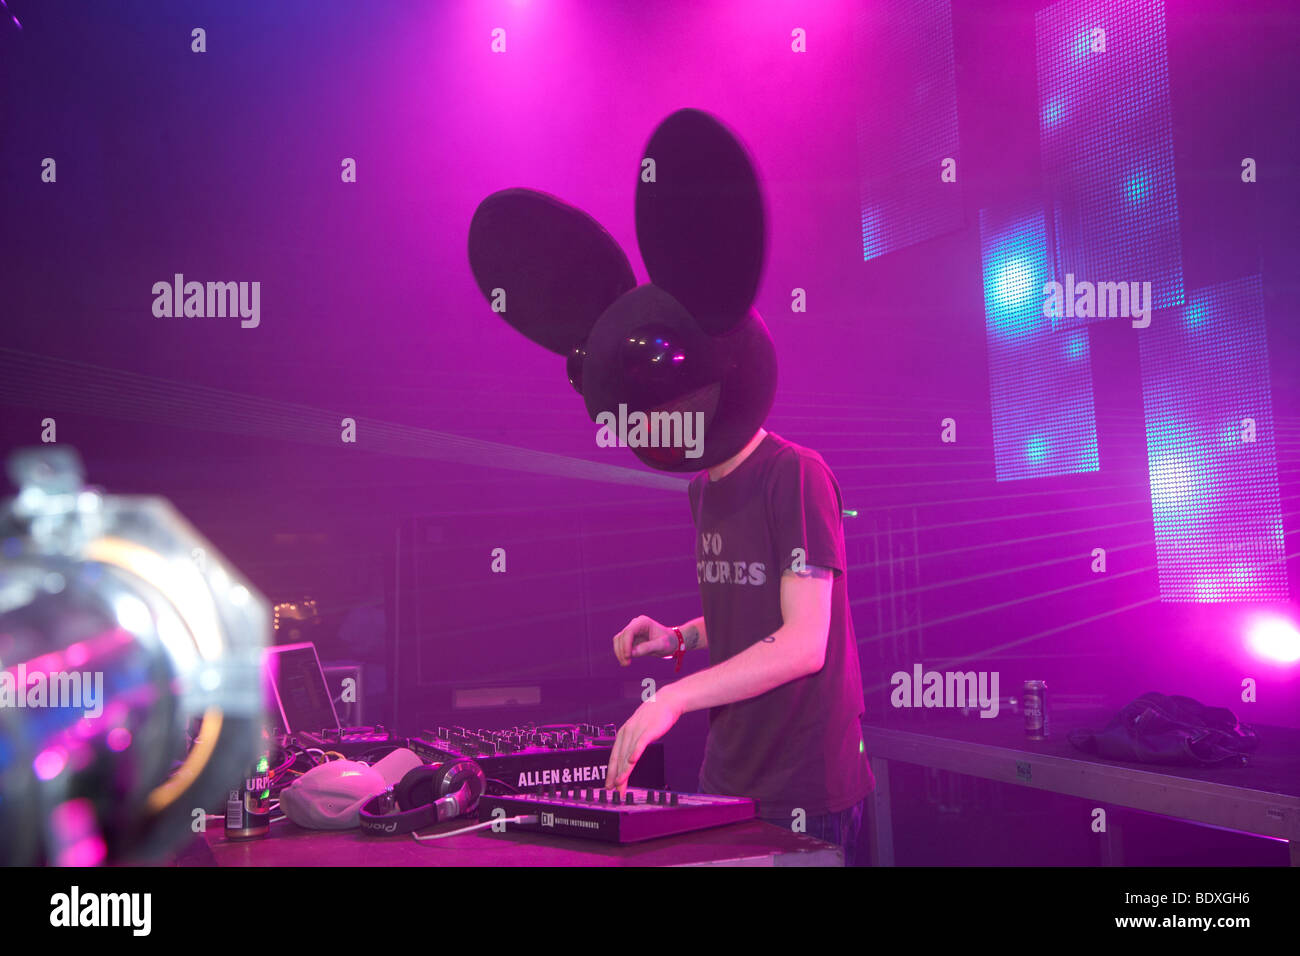 Techno Nature One Festival 2009, DJ Deadmau5, Kastellaun, Rhineland-Palatinate, Germany, Europe - Stock Image